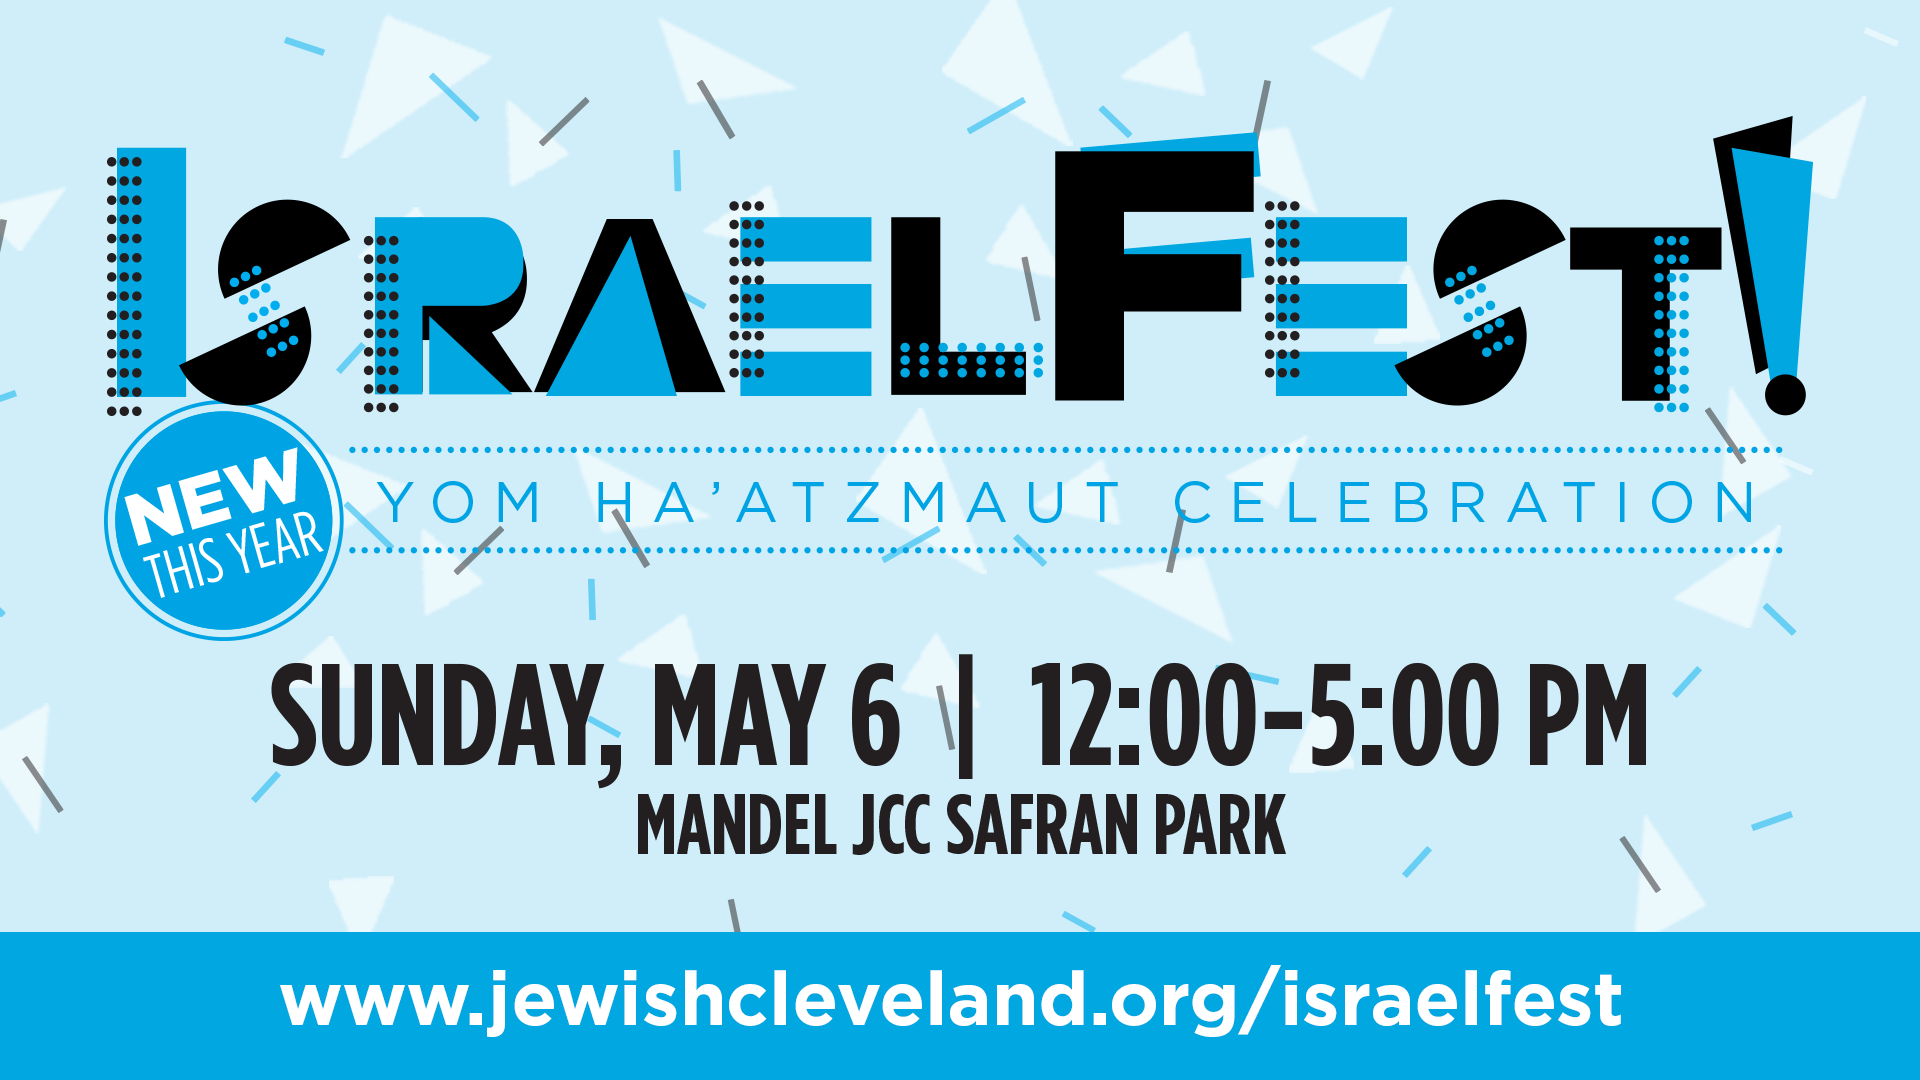 What to Expect at IsraelFest! on May 6